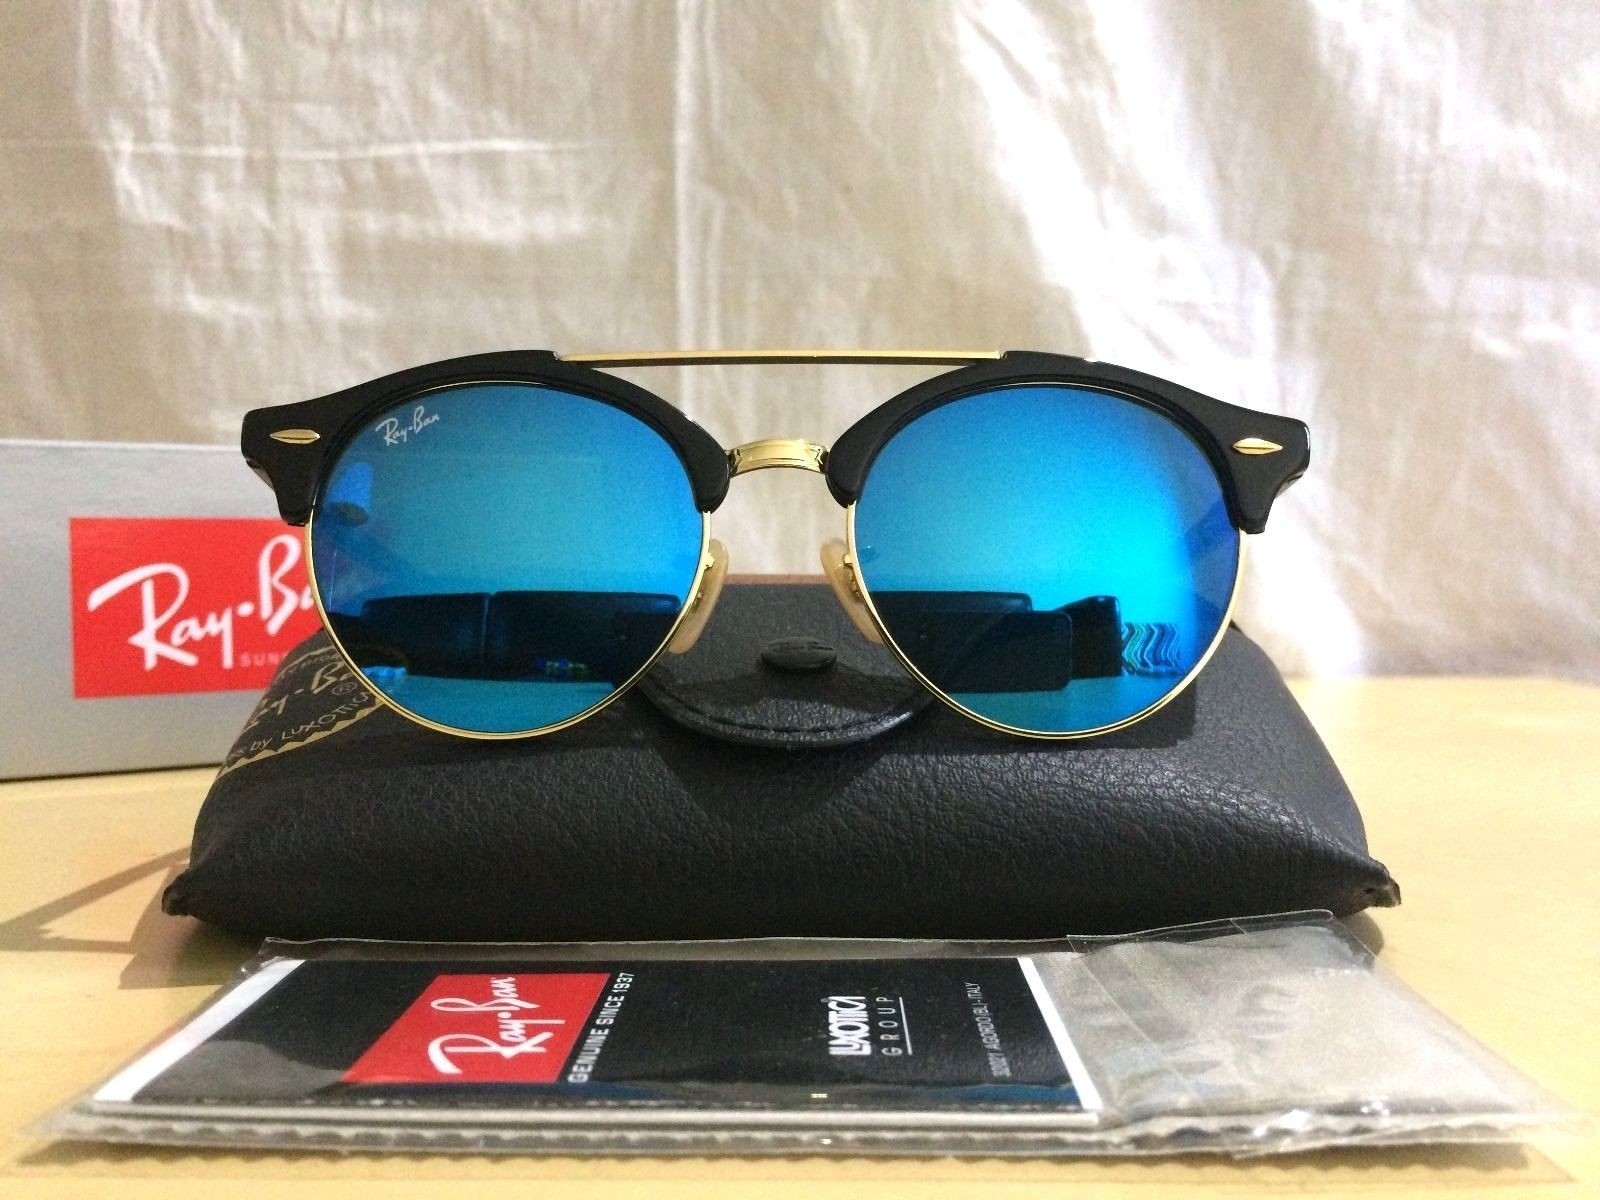 8f80f4c39c Ray Ban CLUBROUND DOUBLE BRIDGE RB4346 51mm Black & Gold Frame Blue Flash  Lens